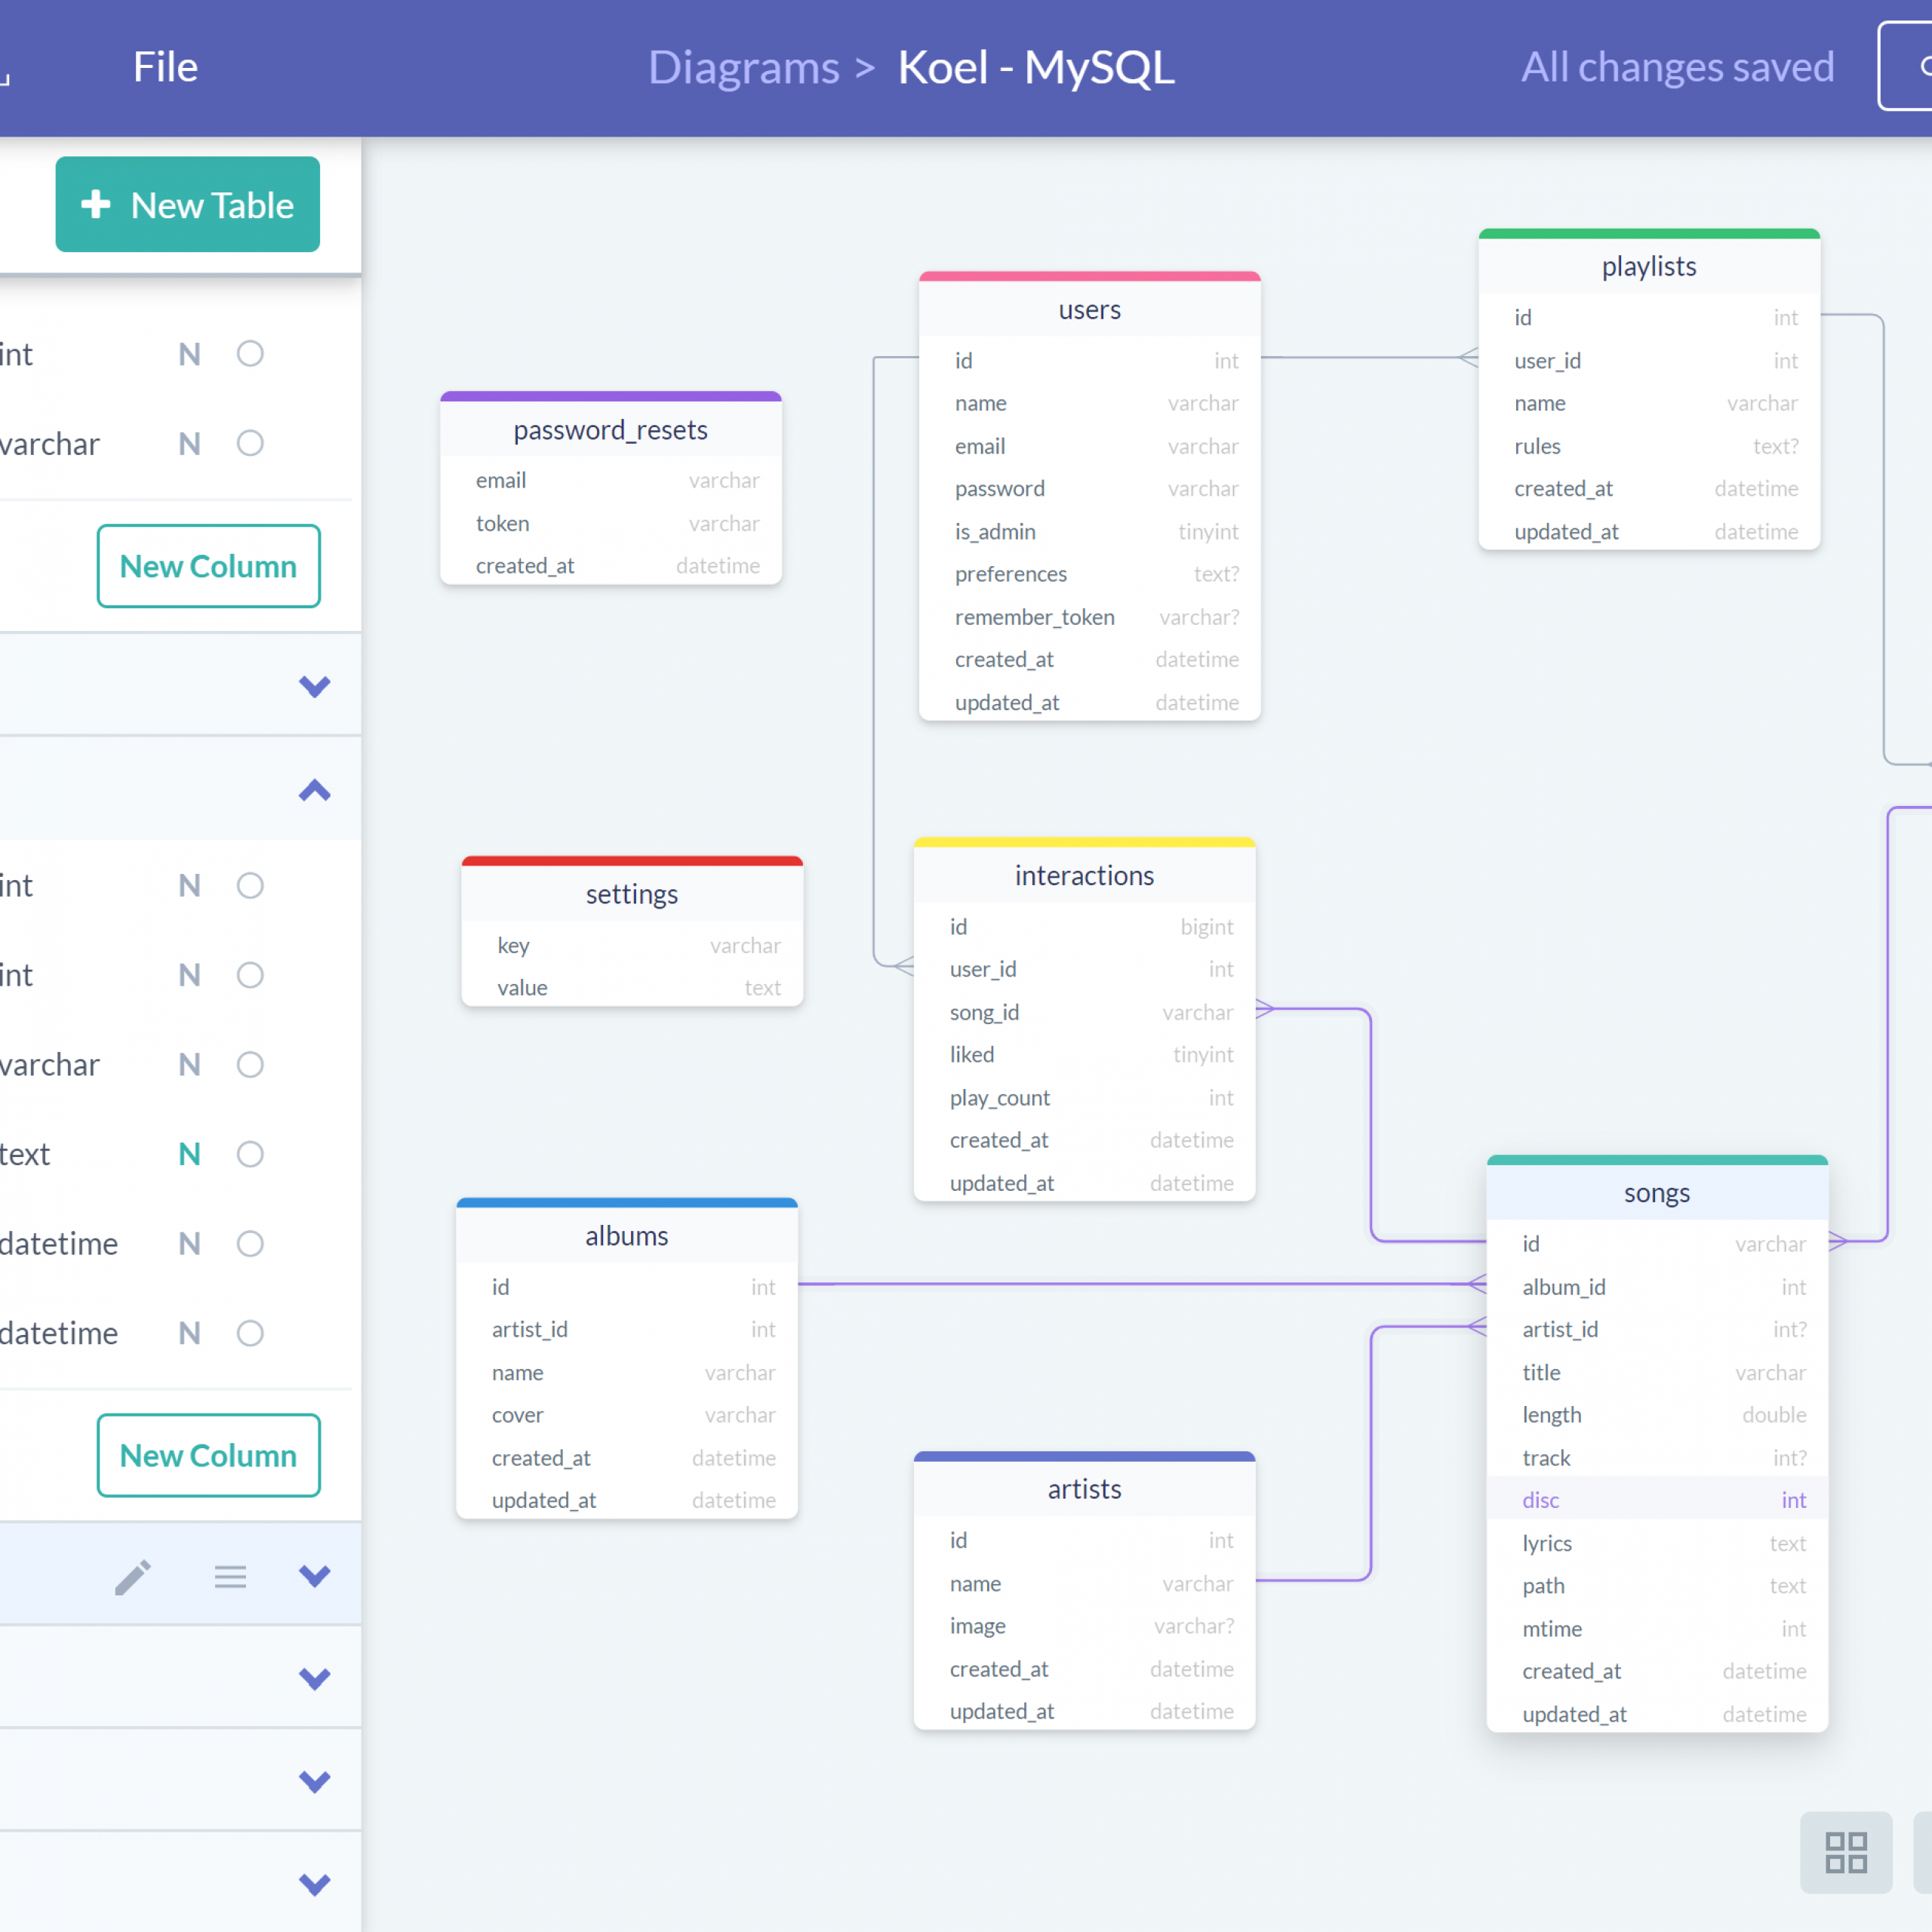 Drawsql - 🔥 Database Schema Diagrams intended for Database Table Diagram Tool